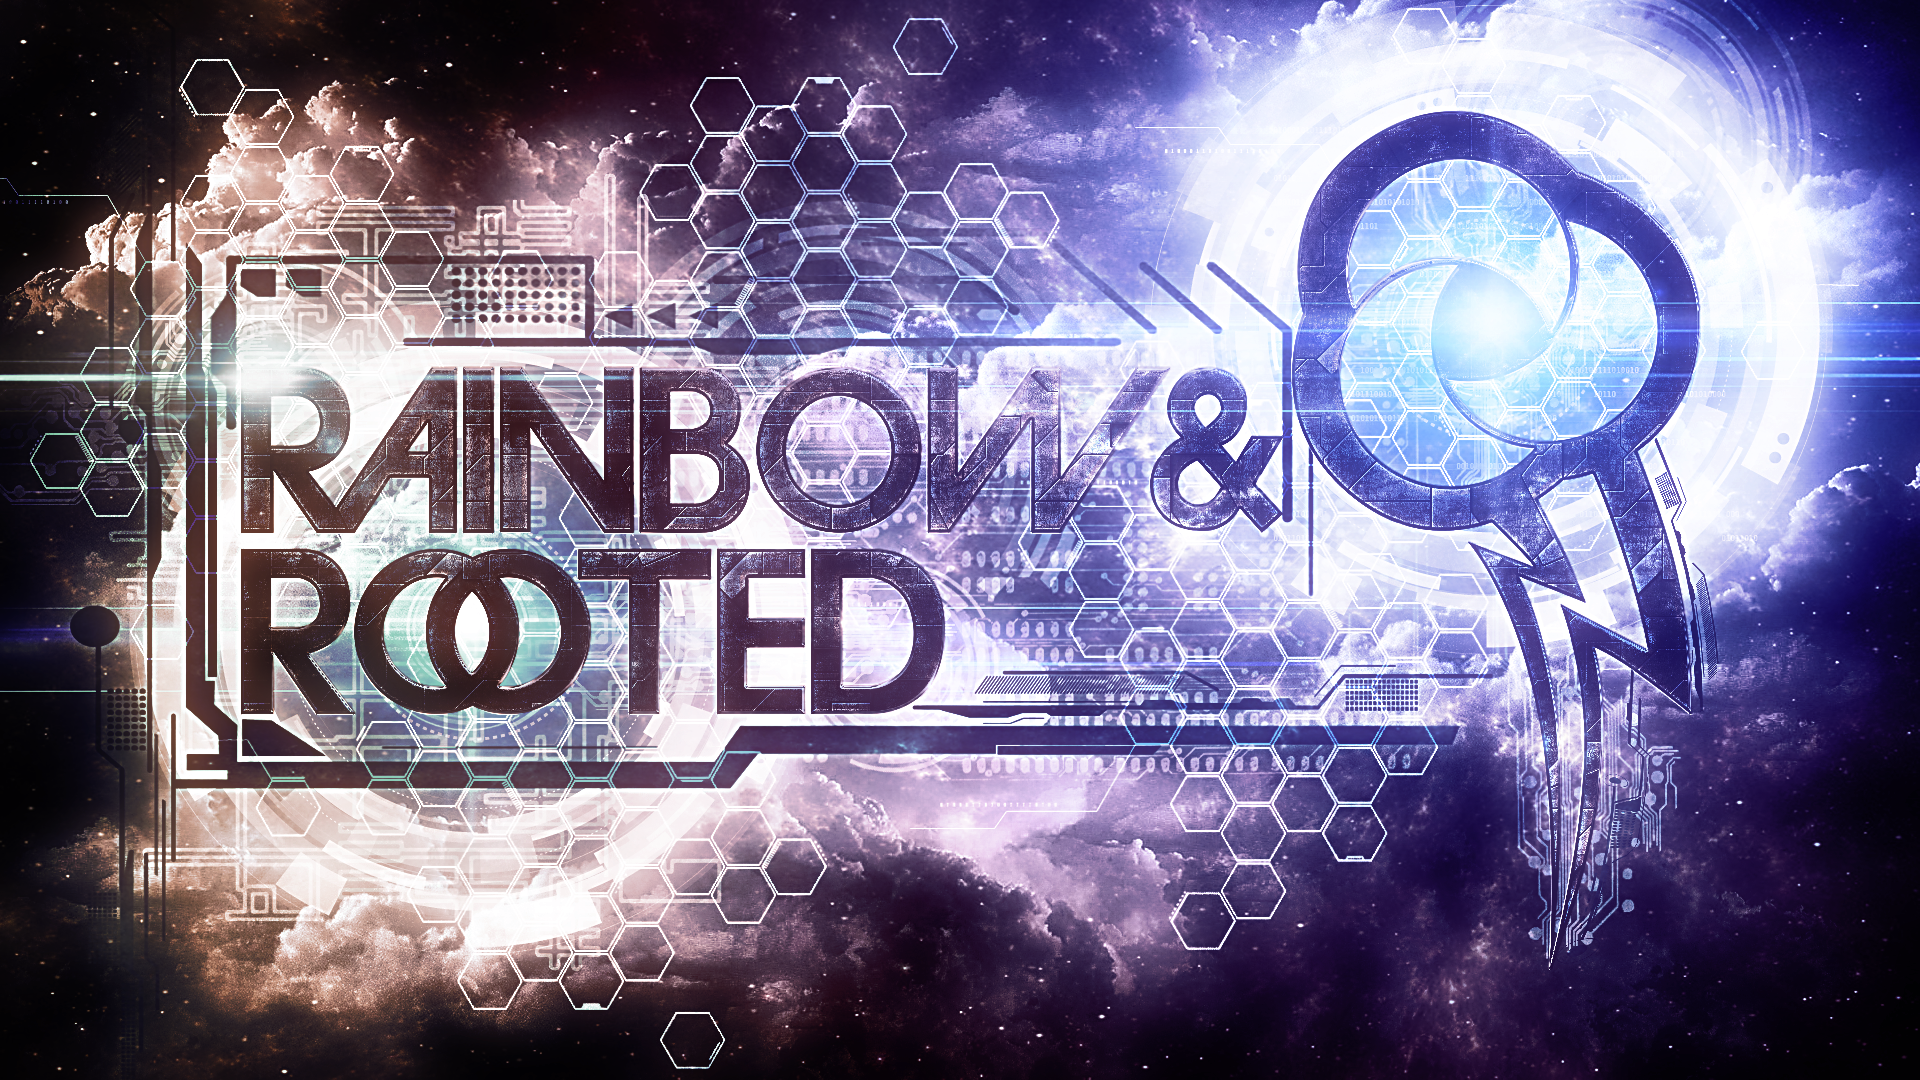 Rainbow and Rooted 1 - Wallpaper by Tzolkine and WMill